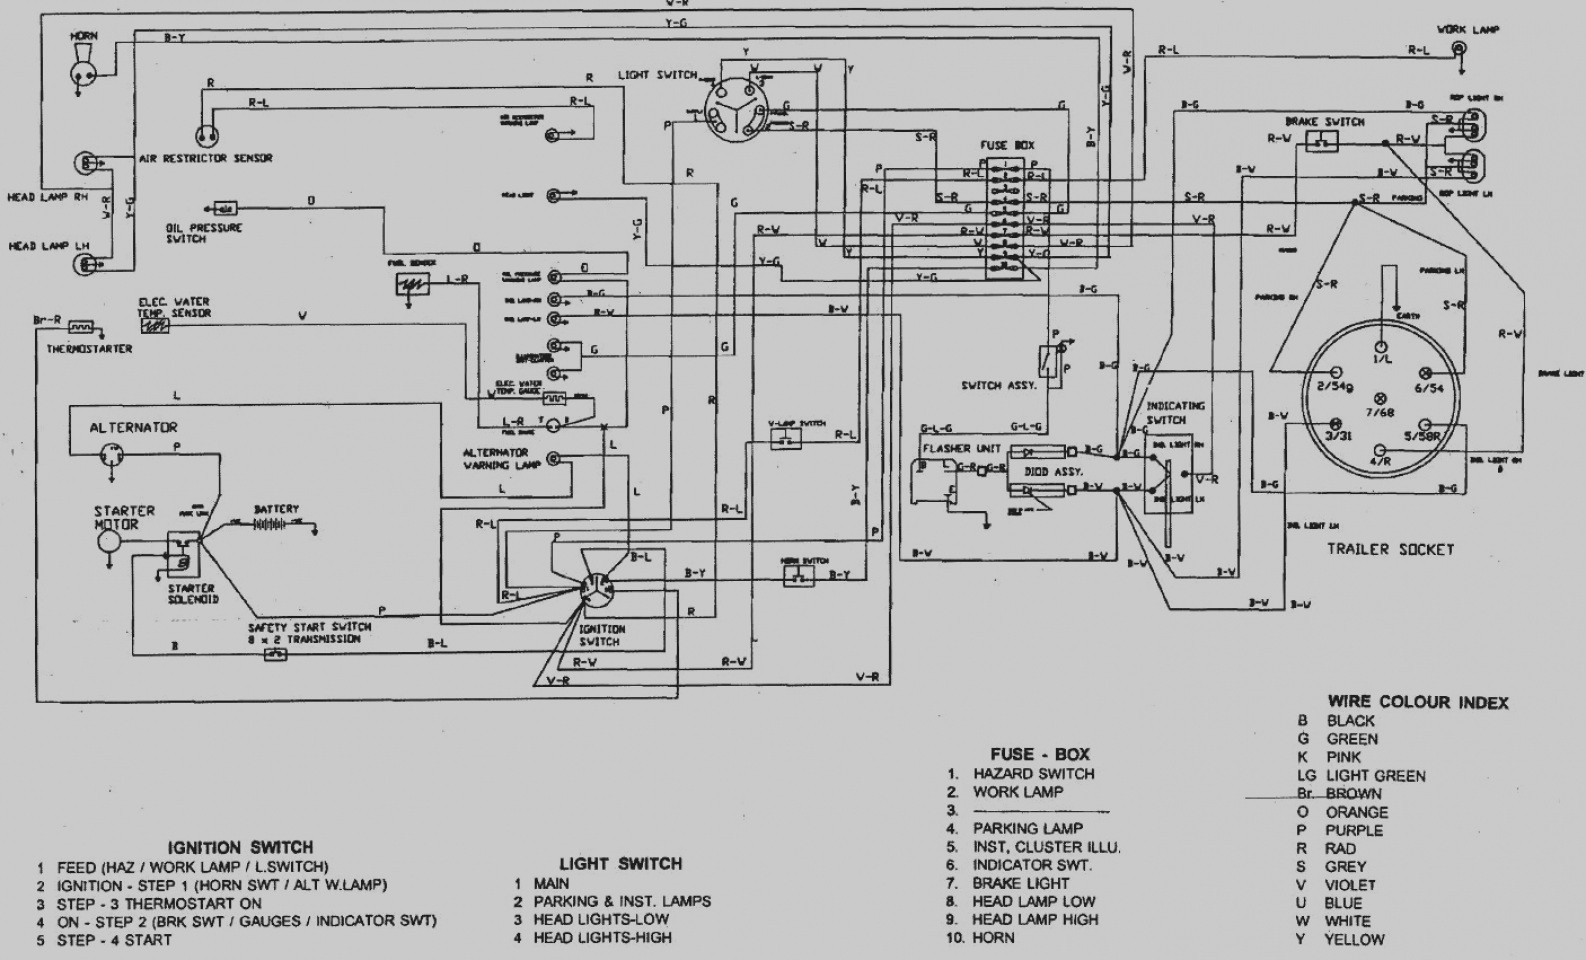 Wiring Diagram For John Deere L120 Lawn Tractor. 27 Unique John Deere Sabre Wiring Diagram For The And D130. John Deere. John Deere L120 Lawn Mower Electrical Diagram At Scoala.co